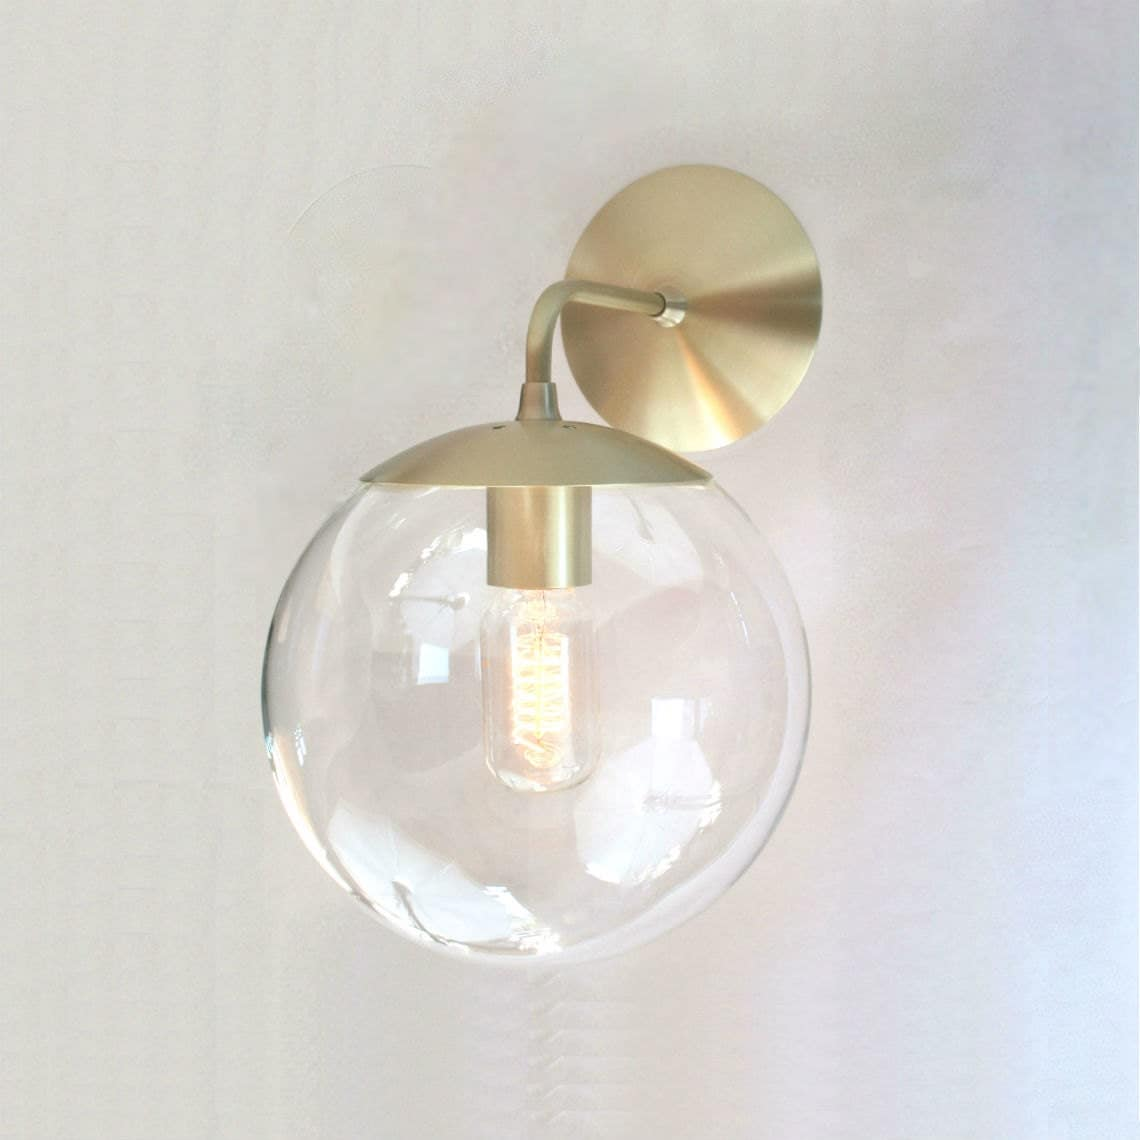 Contemporary Vintage Wall Lights : Mid Century Modern Wall Sconce Light 8 Clear Glass Globe